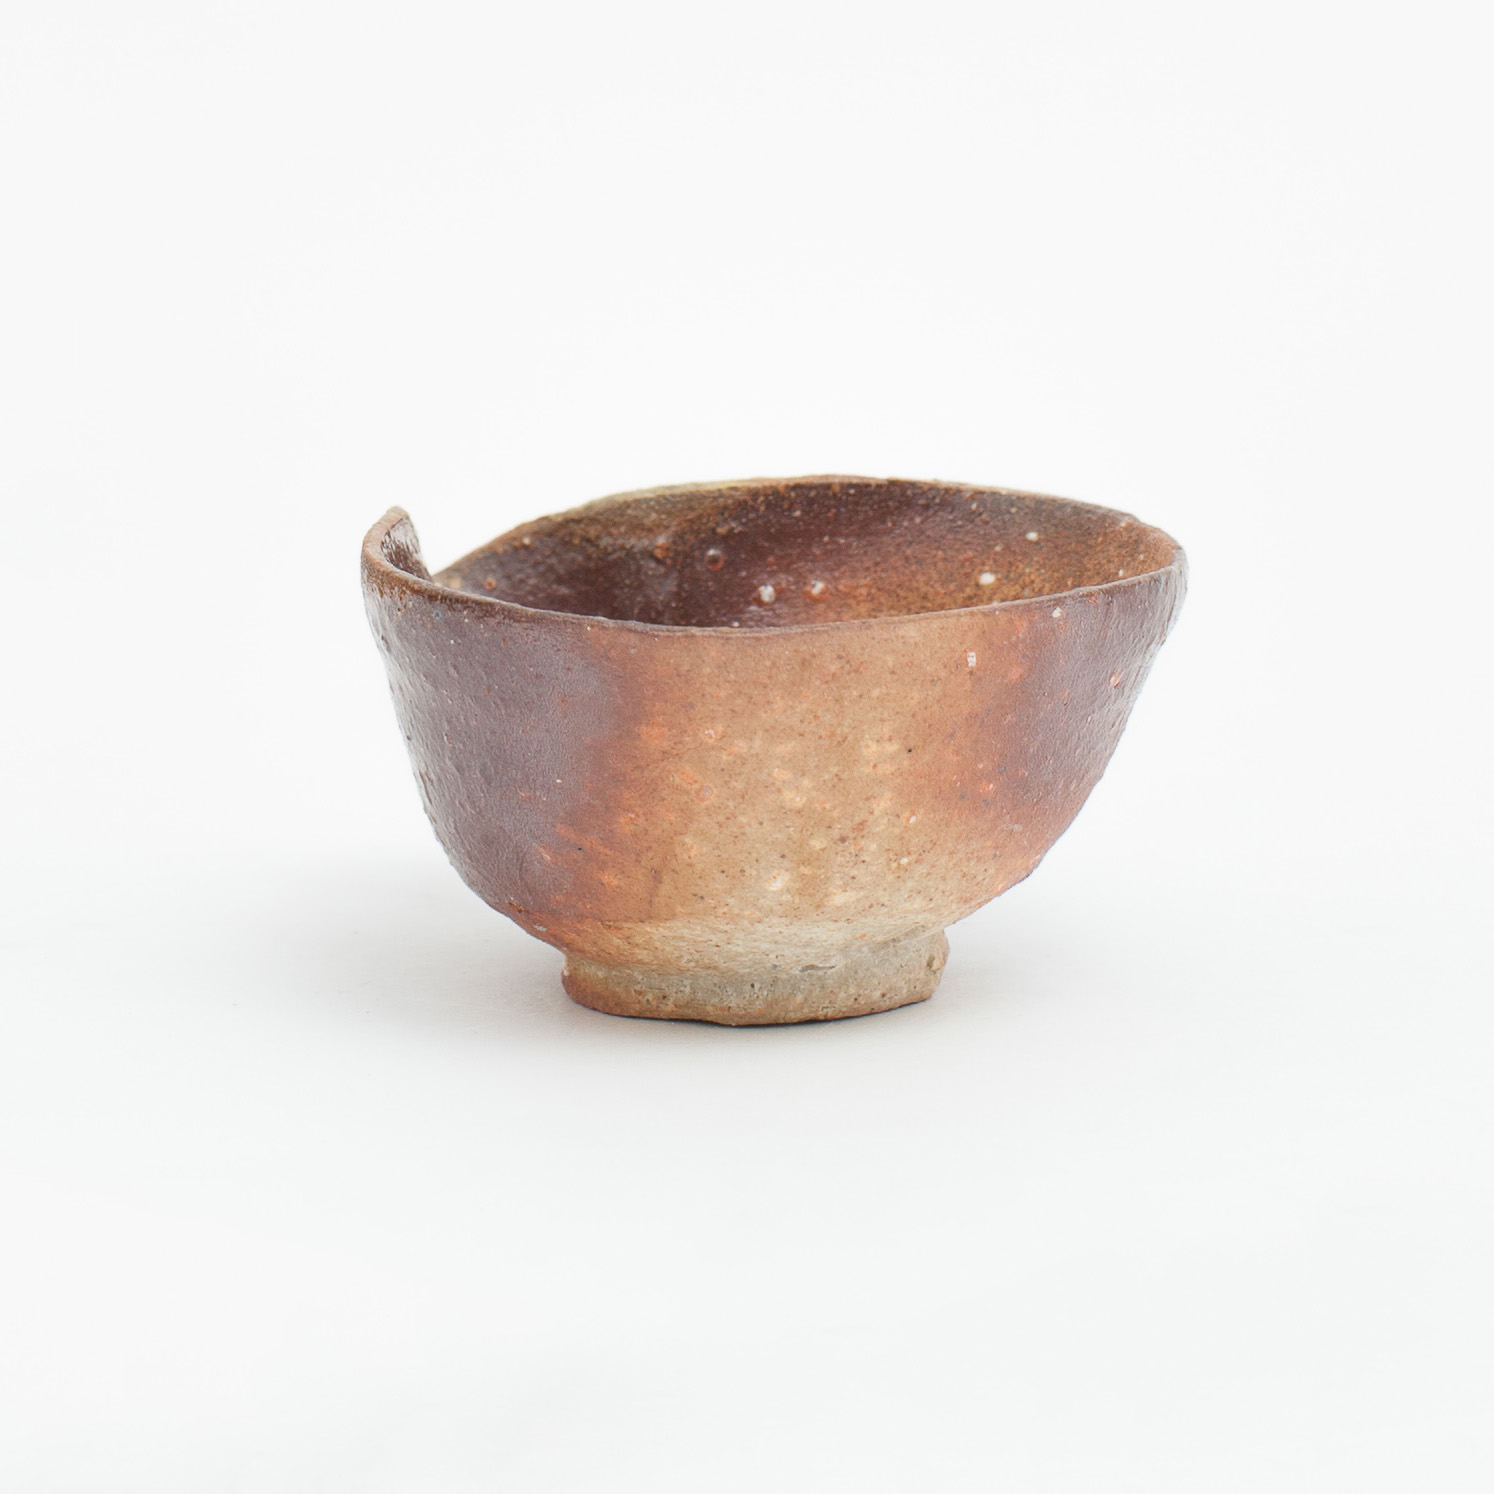 Erik Haugsby handmade pottery woodfired ceramic pouring bowl